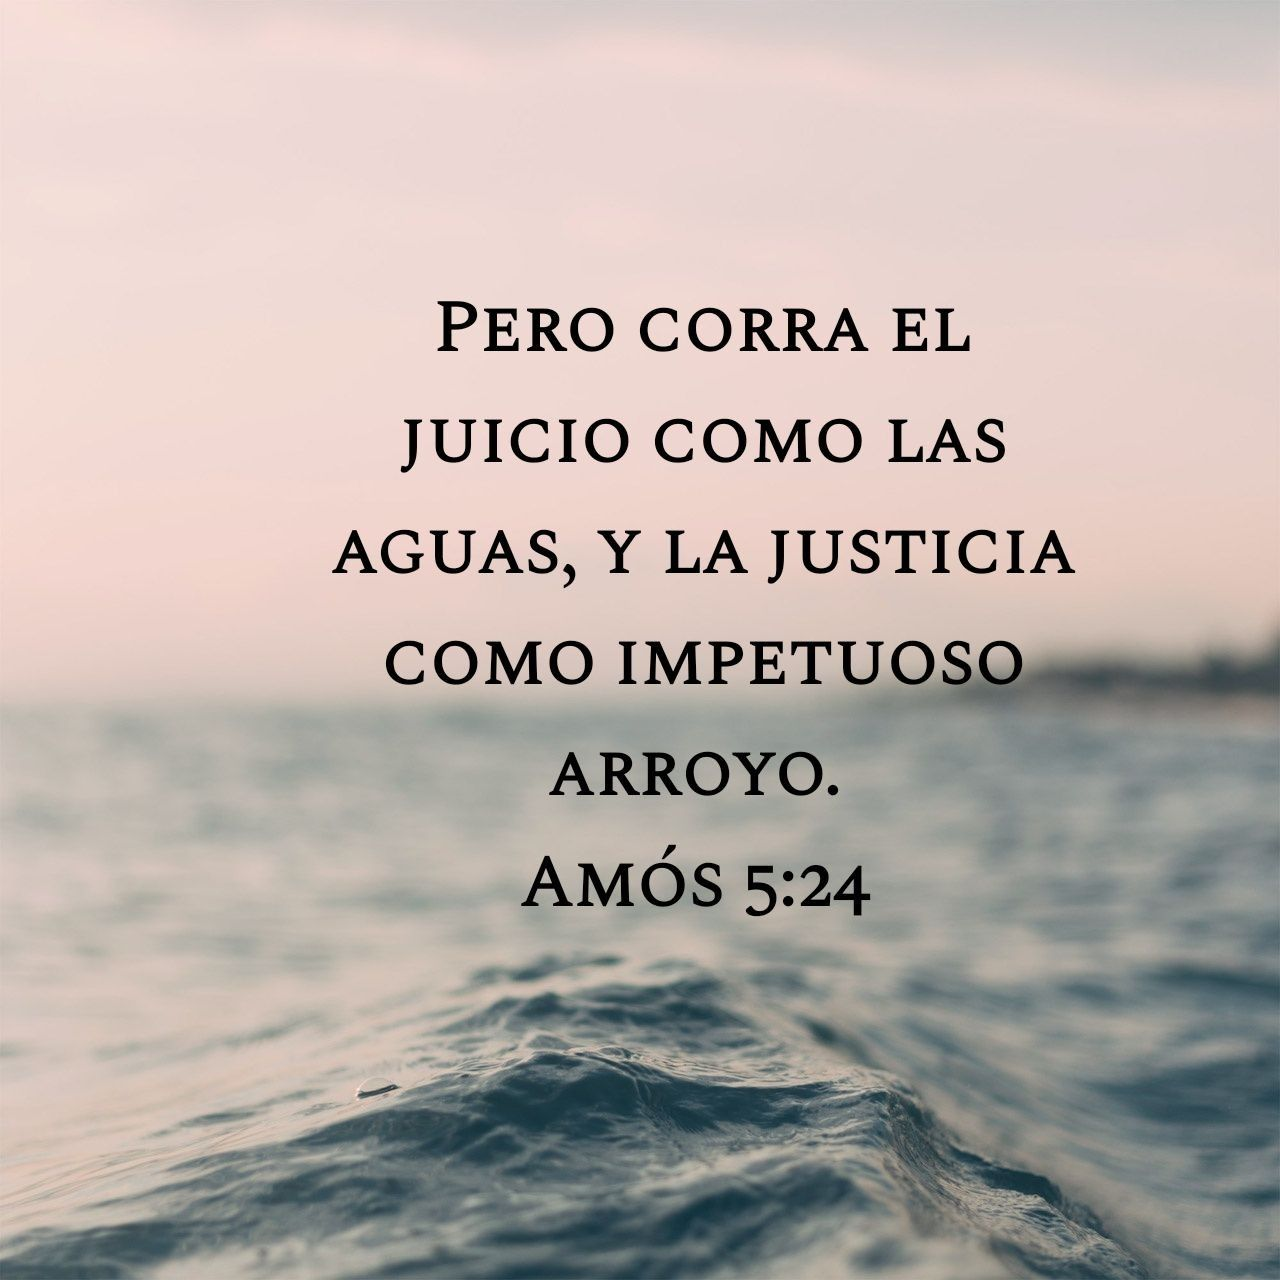 Pin by Jeanneth Fallas Gonzalez on Versiculos biblicos   Outdoor, Beach,  Movie posters